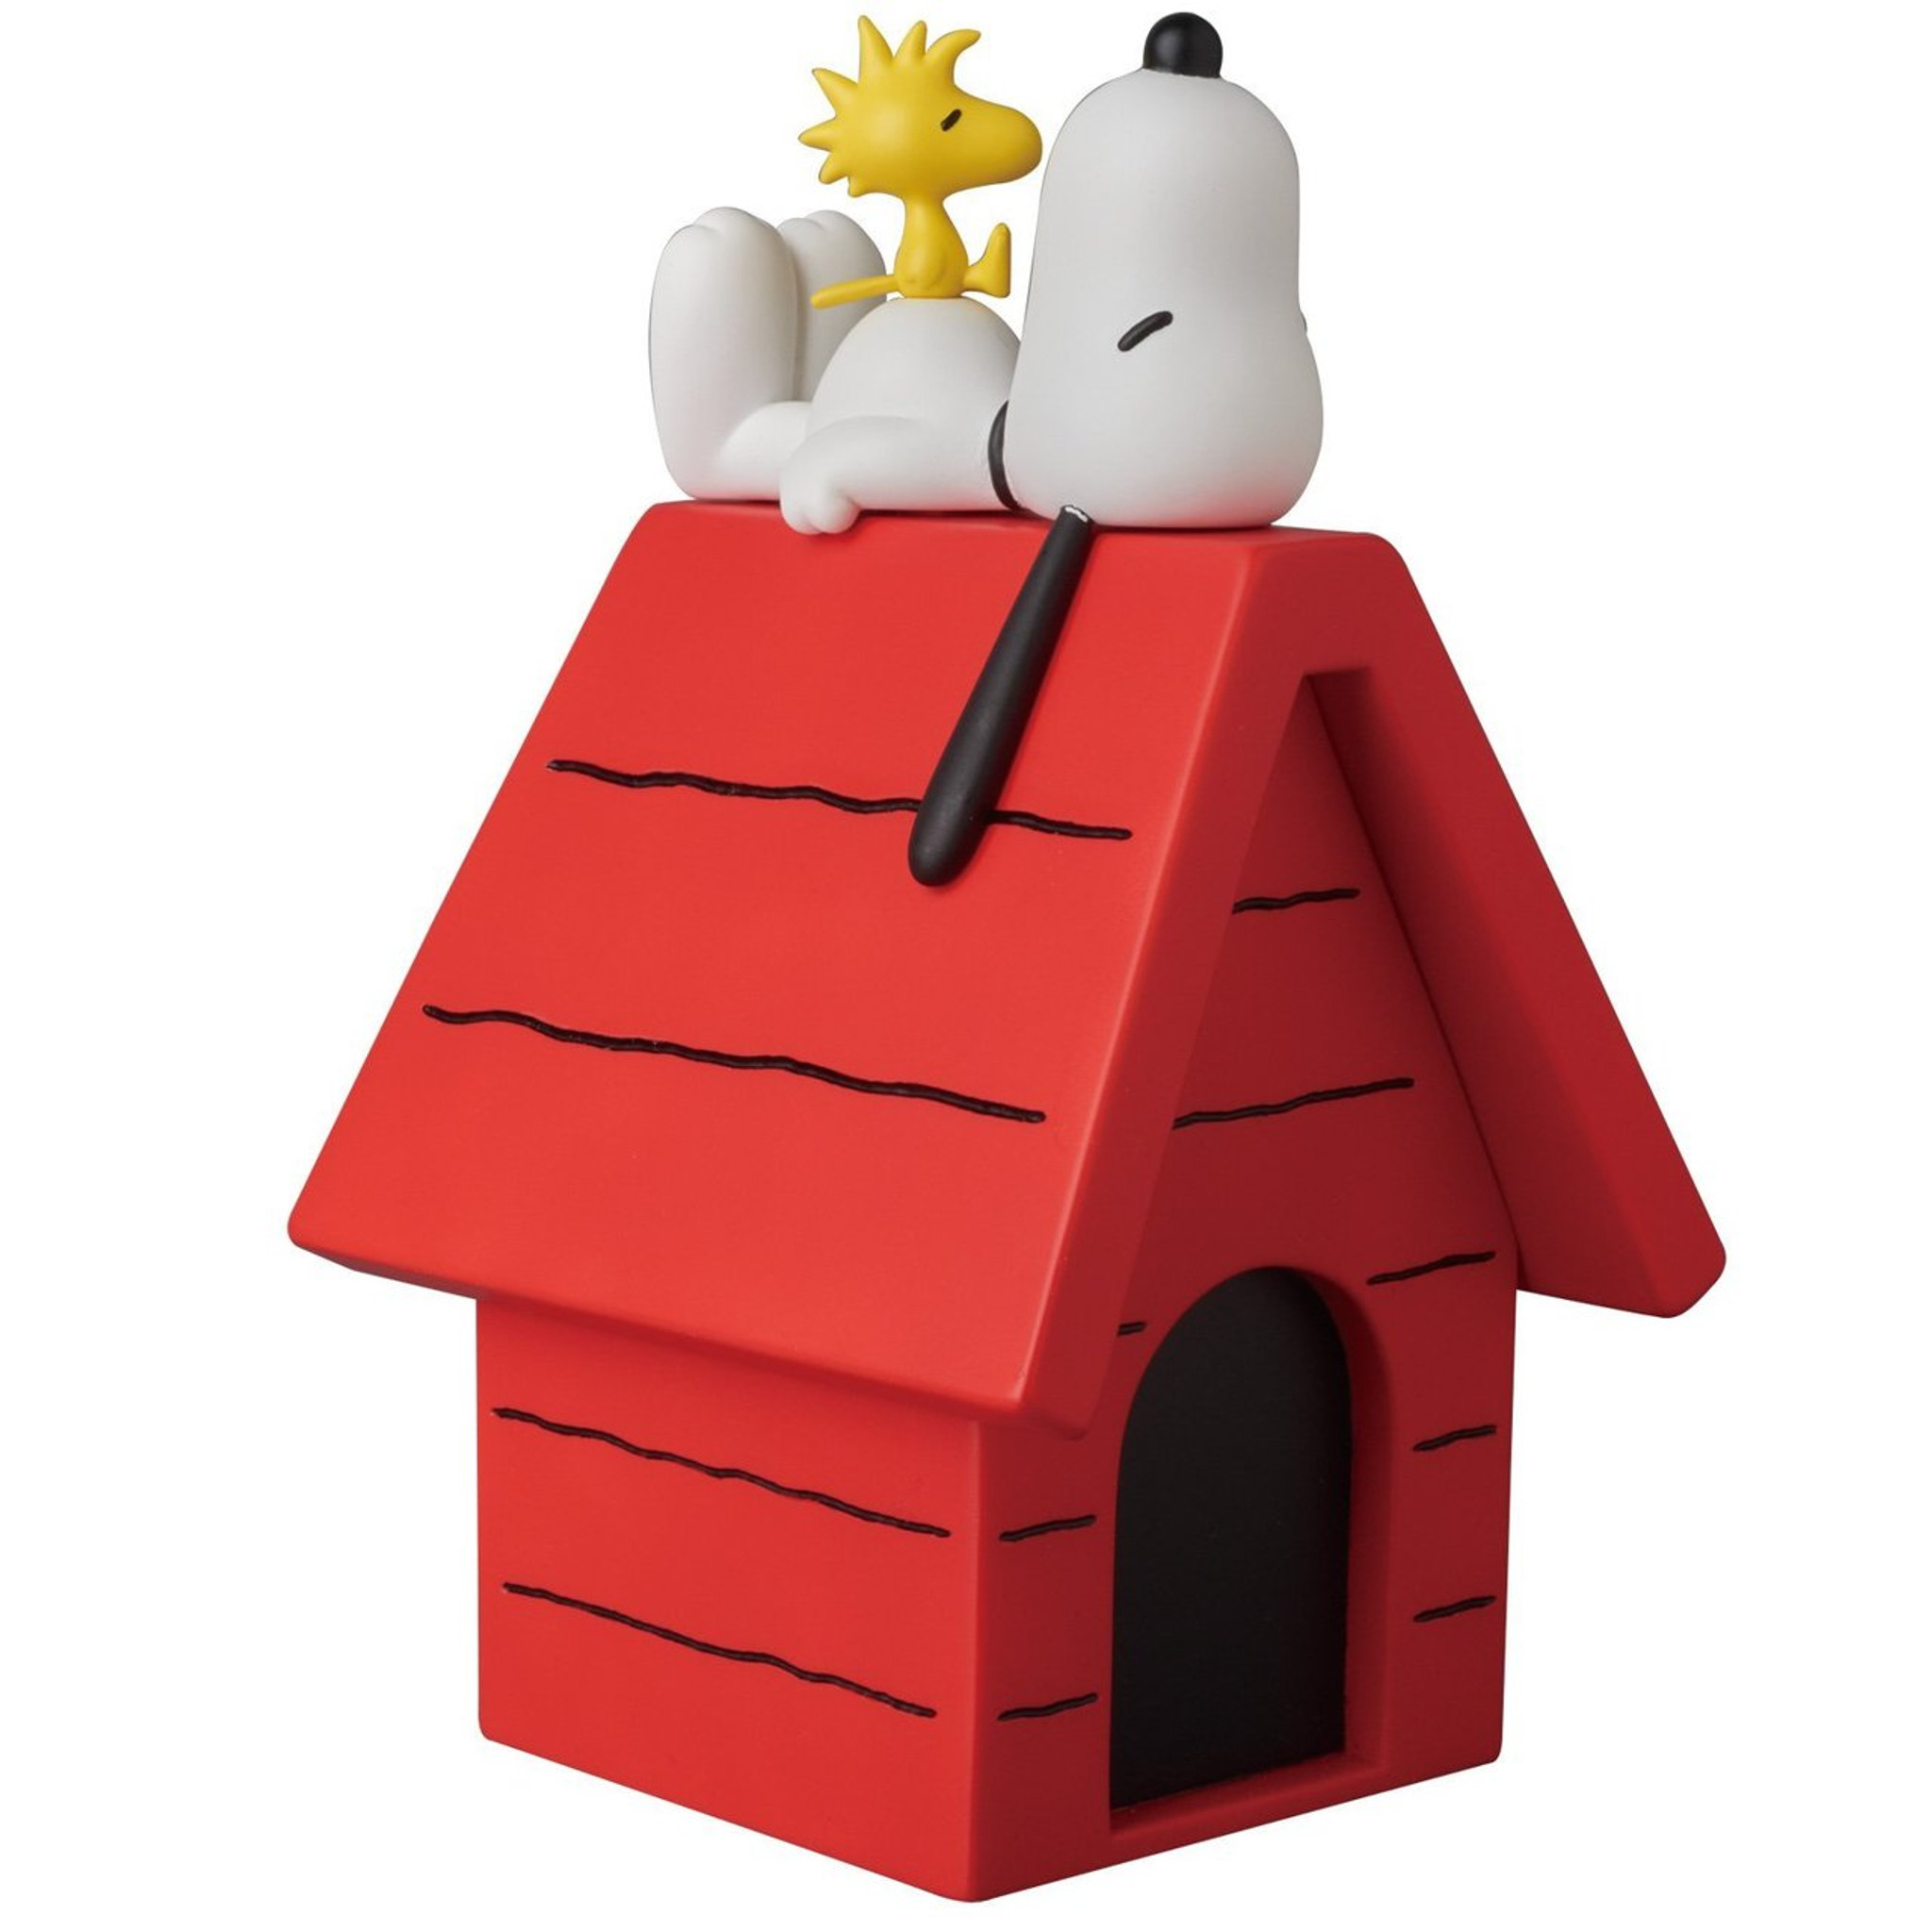 Medicom Snoopy And Woodstock On The Dog House Figure